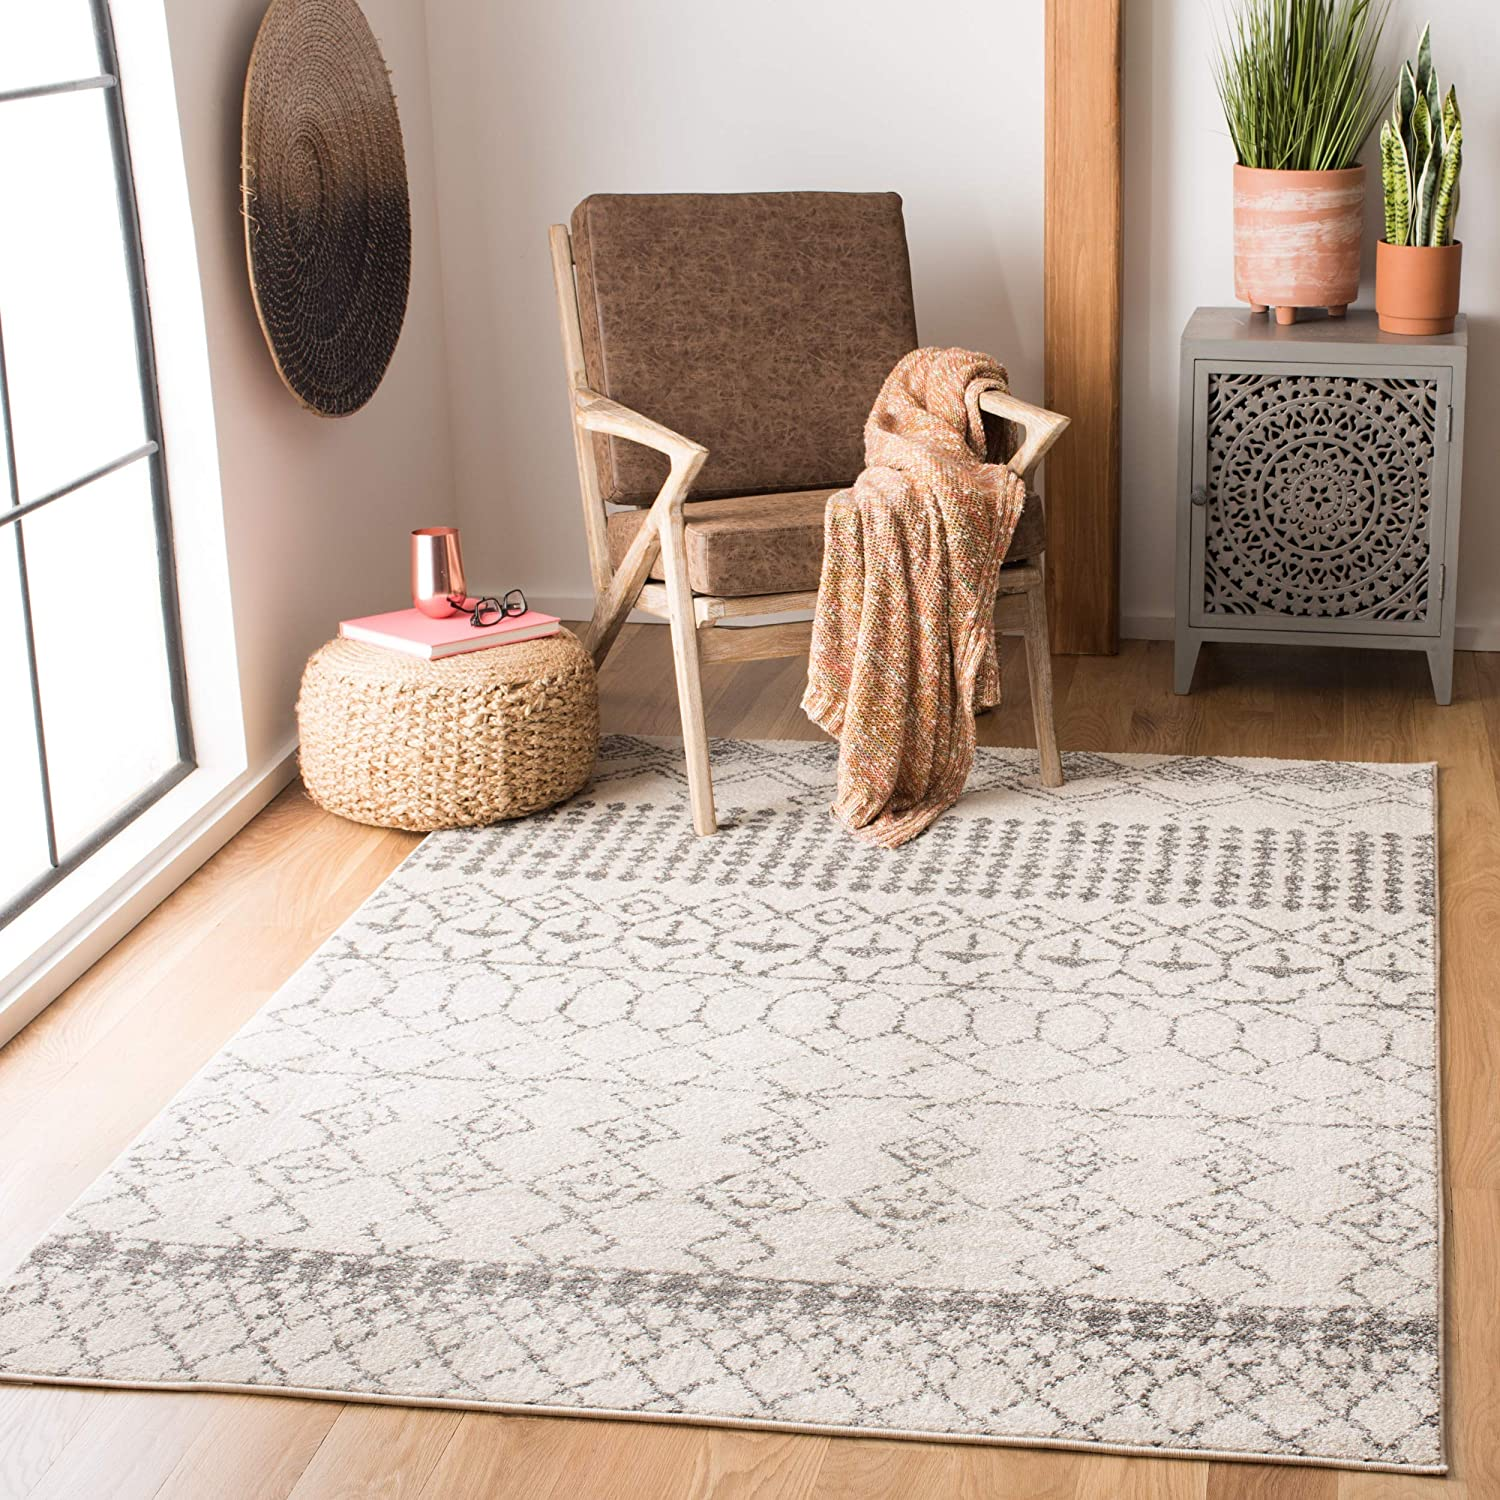 Amazon Com Safavieh Tulum Collection Tul229a Moroccan Boho Distressed Non Shedding Stain Resistant Living Room Bedroom Area Rug 4 X 6 Ivory Grey Furniture Decor